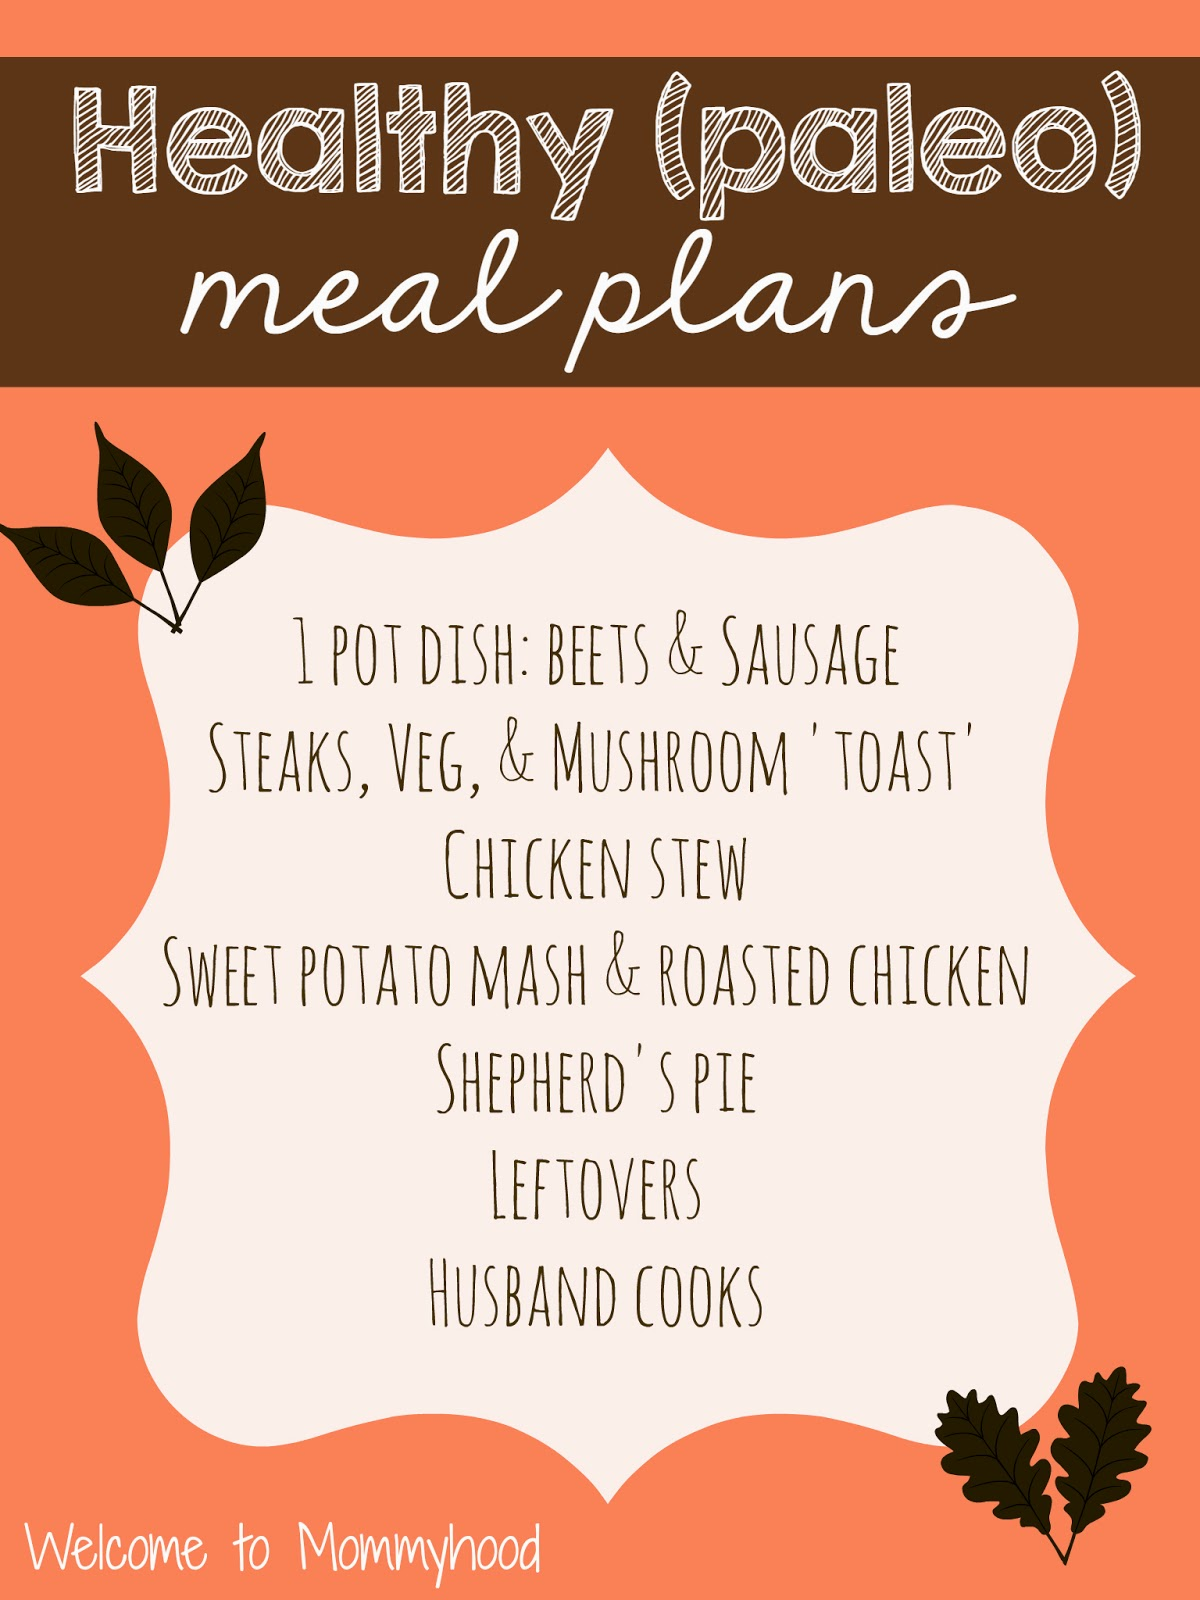 Healthy meal plans by Welcome to Mommyhood #paleo #PaleoMealPlan #healthymealplans